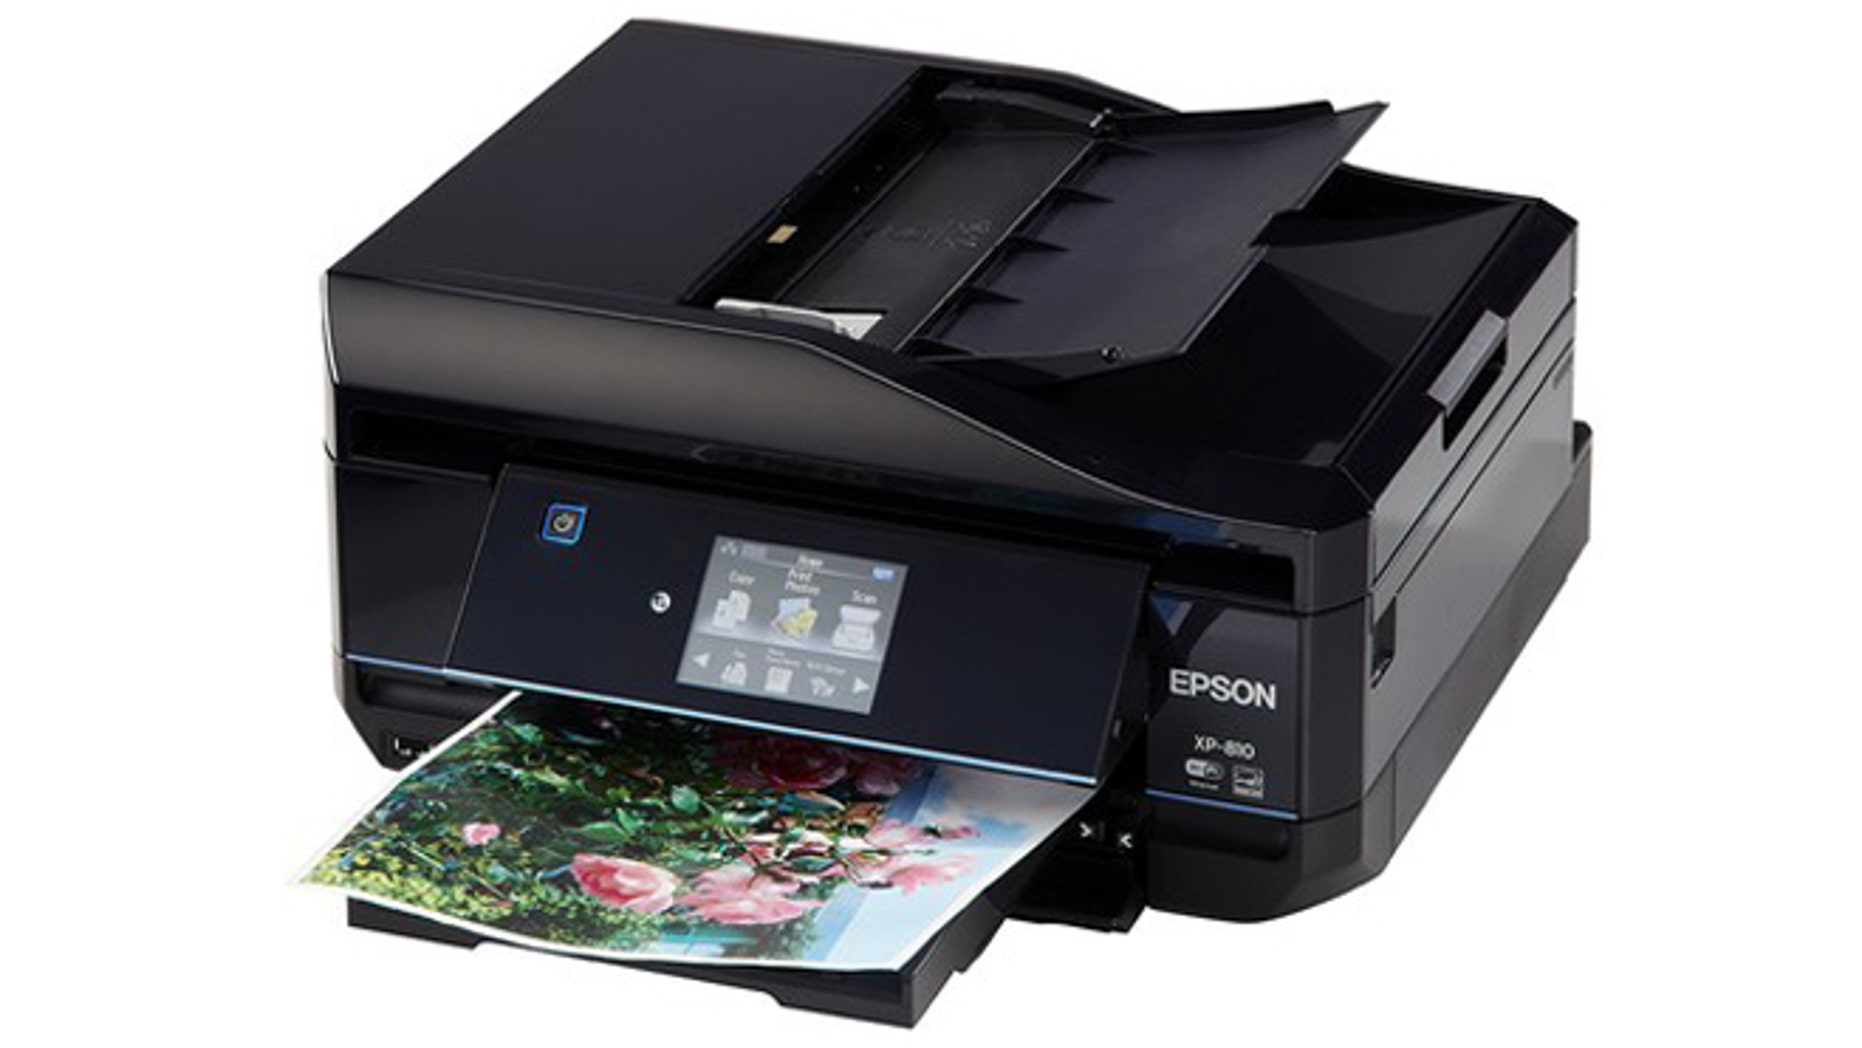 The Epson Expression Premium XP810.